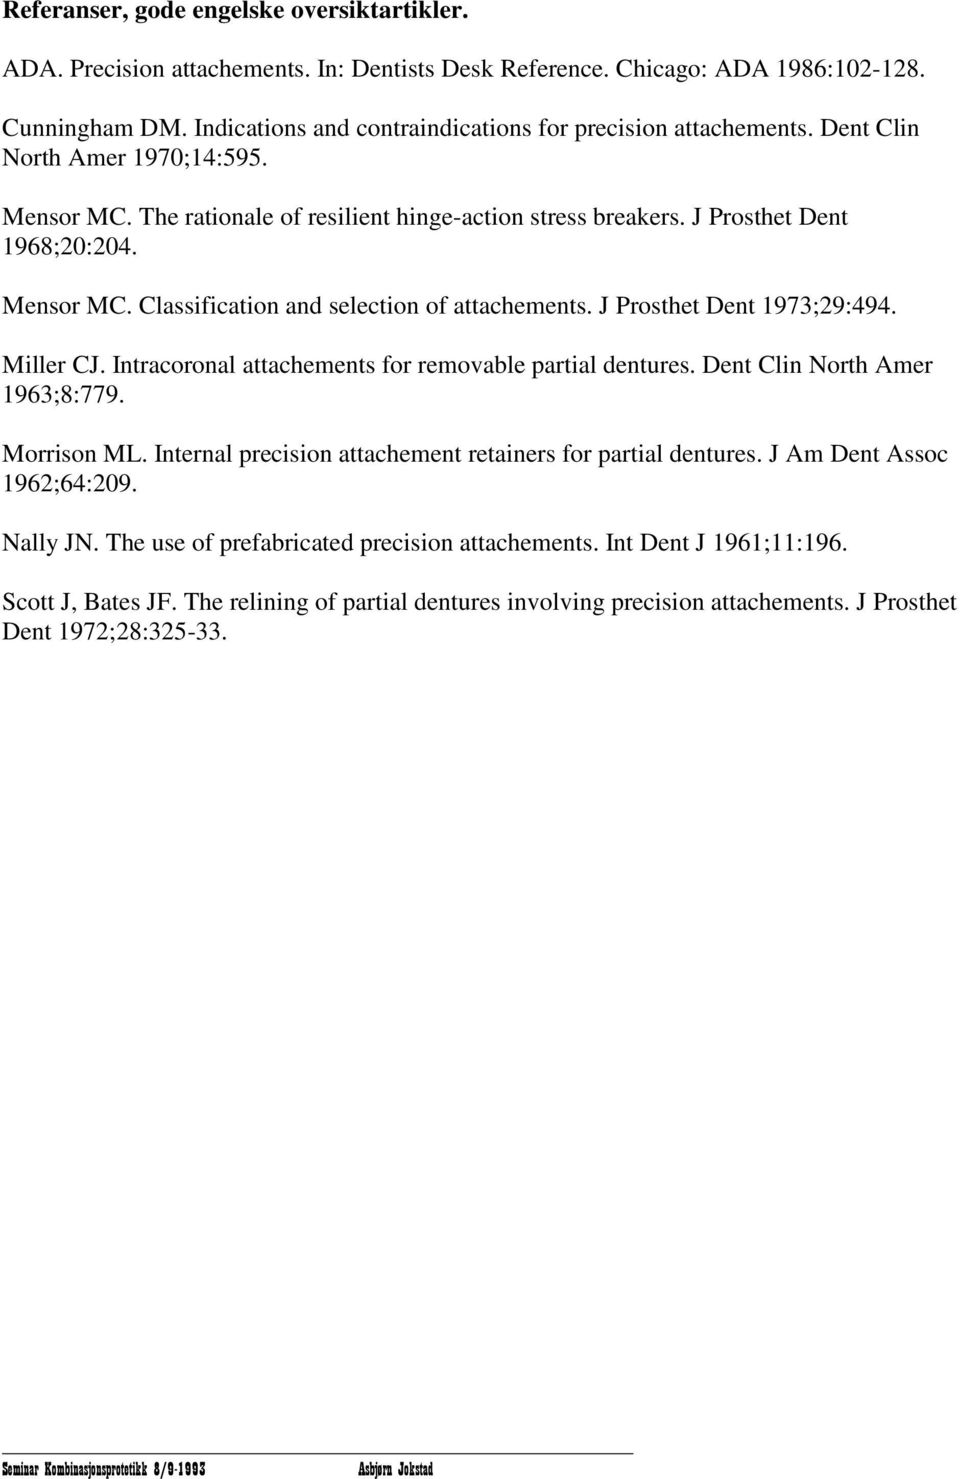 Mensor MC. Classification and selection of attachements. J Prosthet Dent 1973;29:494. Miller CJ. Intracoronal attachements for removable partial dentures. Dent Clin North Amer 1963;8:779. Morrison ML.